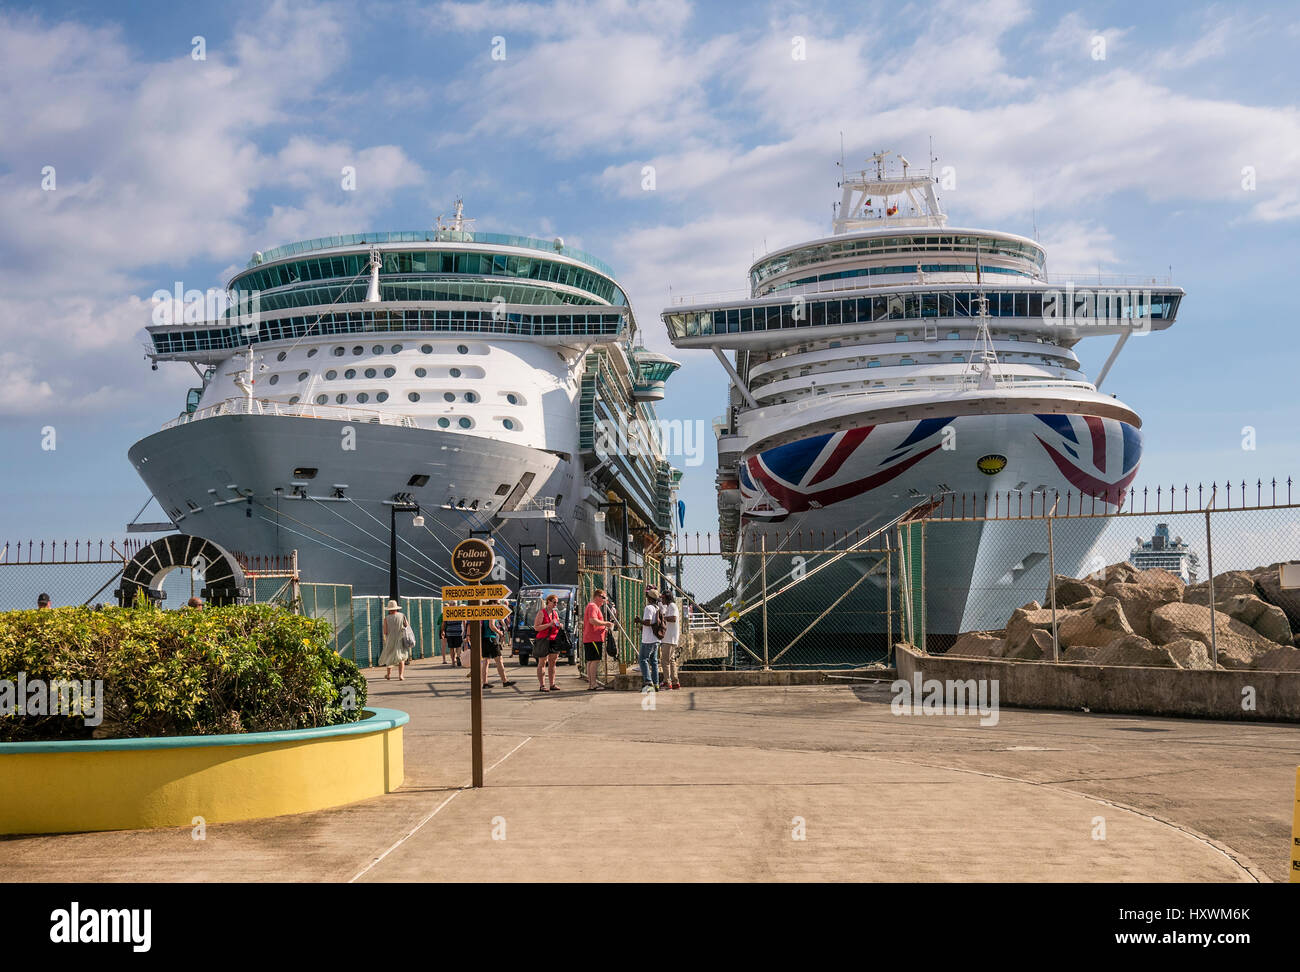 Cruise Ships 'Serenade of the Seas' and Azura Moored at Terminal at Basseterre Capital of Caribbean Island - Stock Image